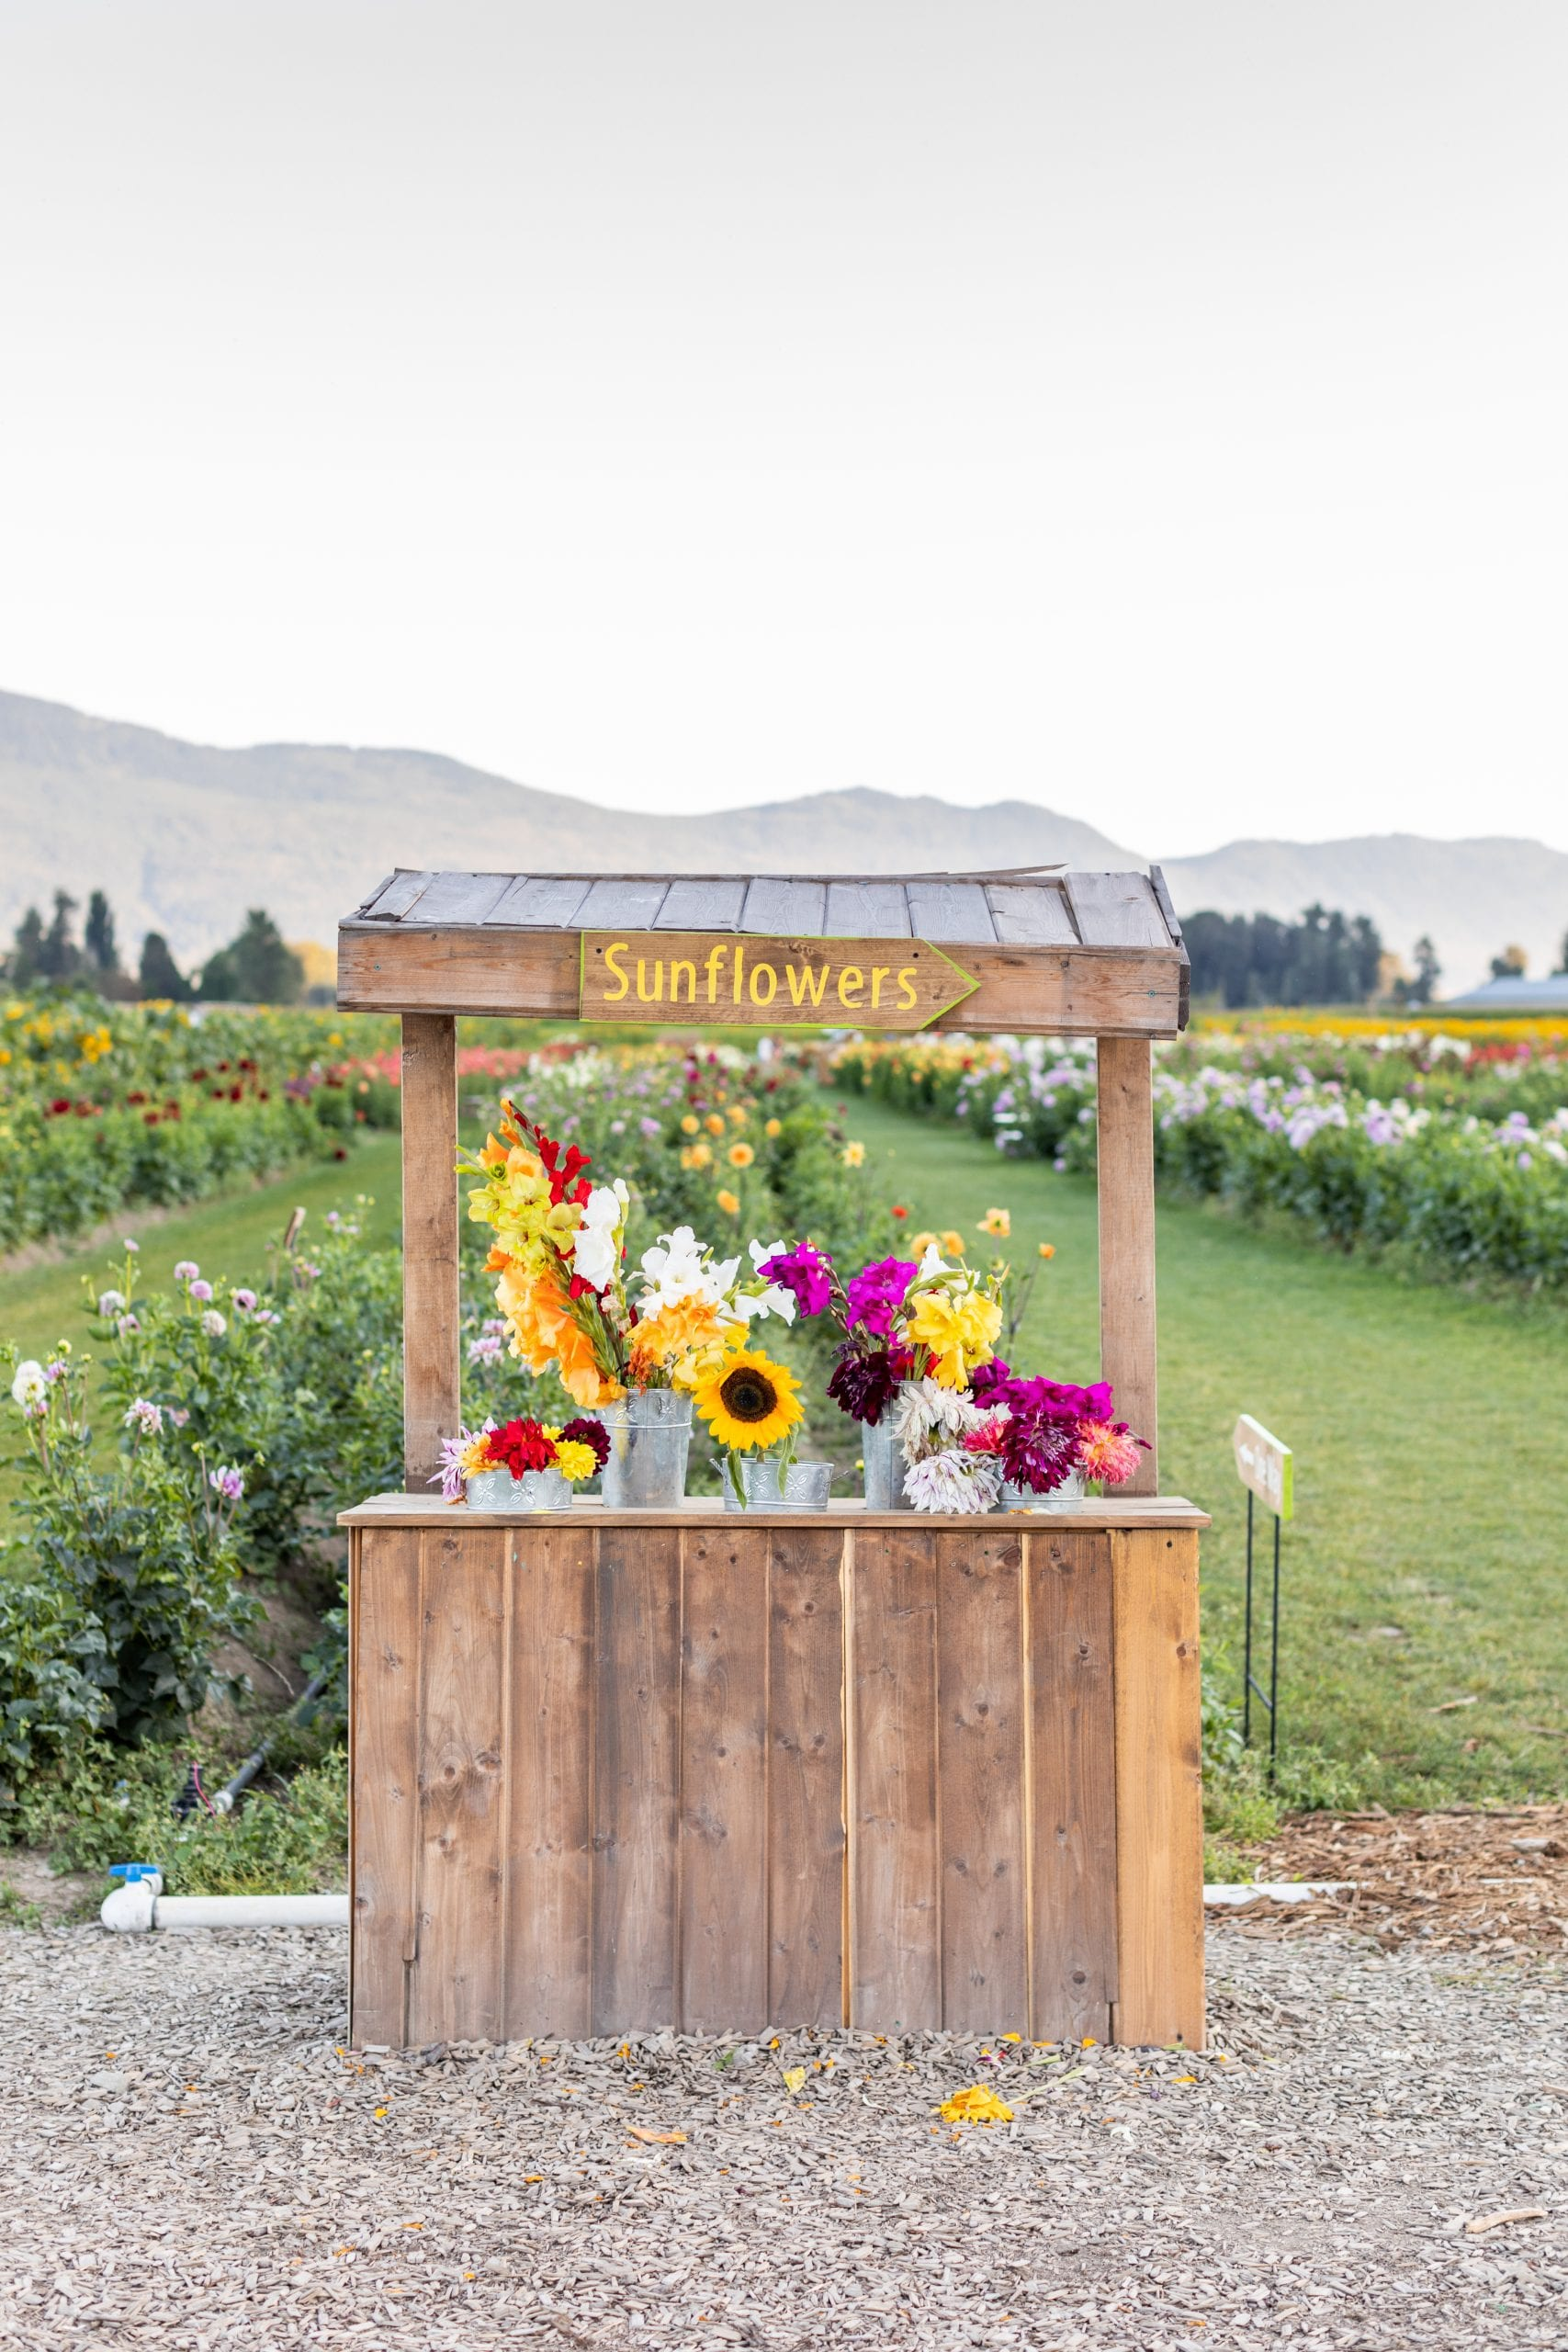 Jillian Harris is now offering Stock Photo Imagery through The Jilly Academy Campus Store such as this  image of a floral stand at a flower farm.